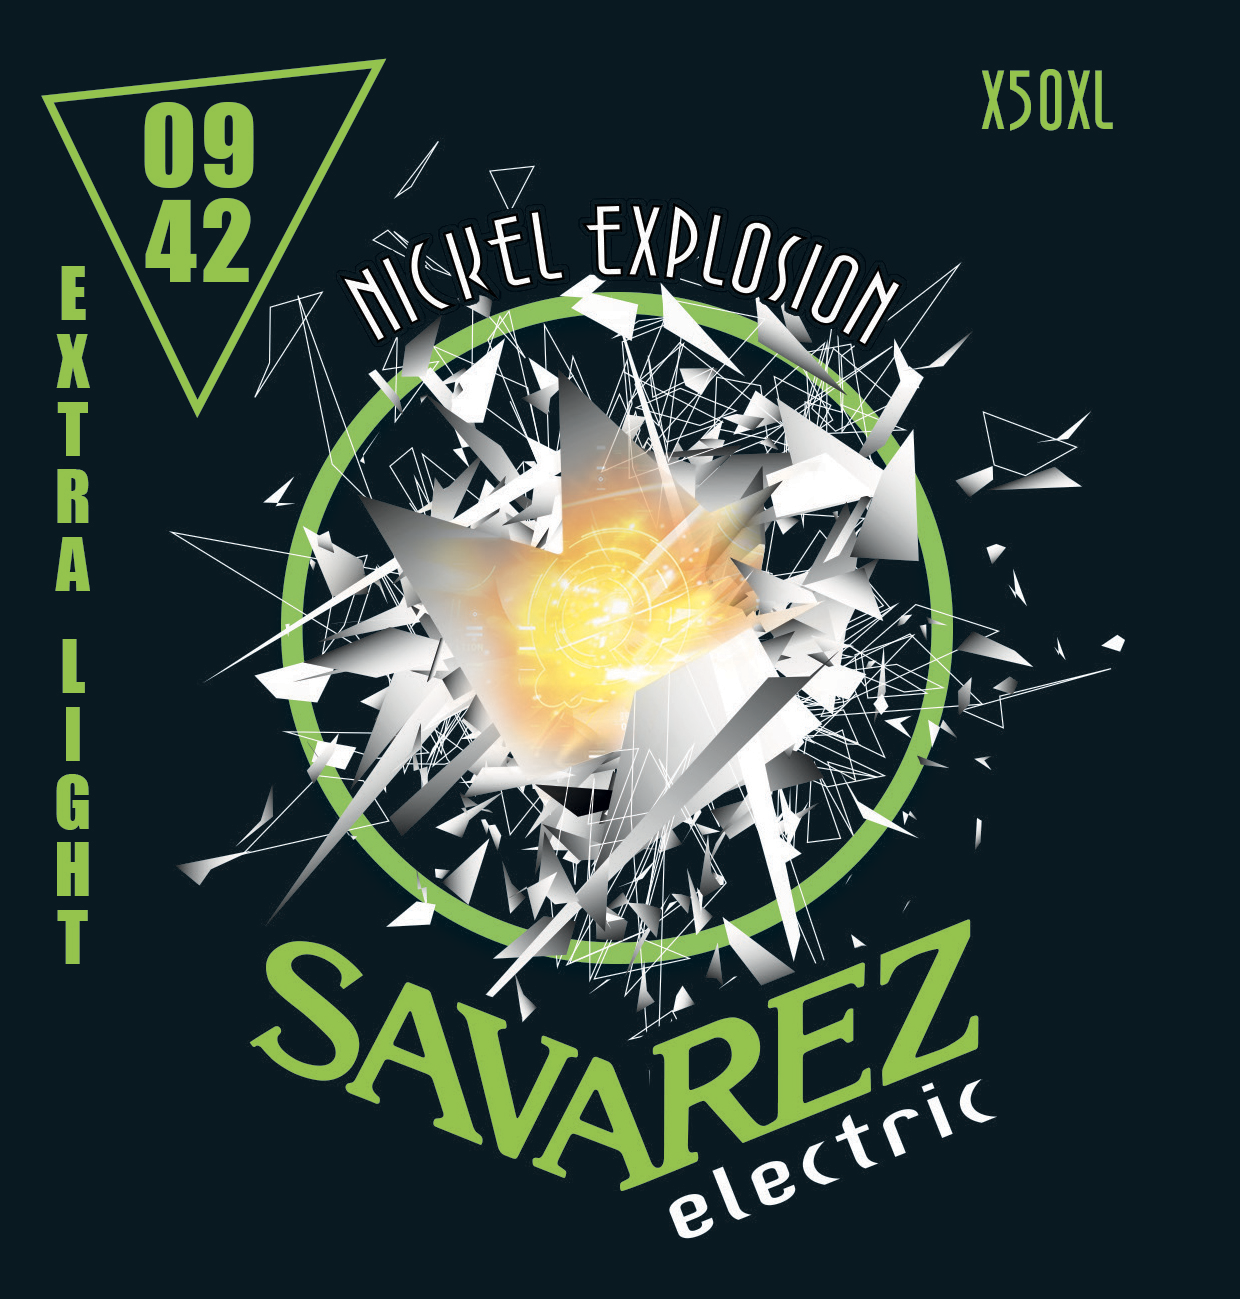 SAVAREZ ELECTRIC NICKEL EXPLOSION X50XL